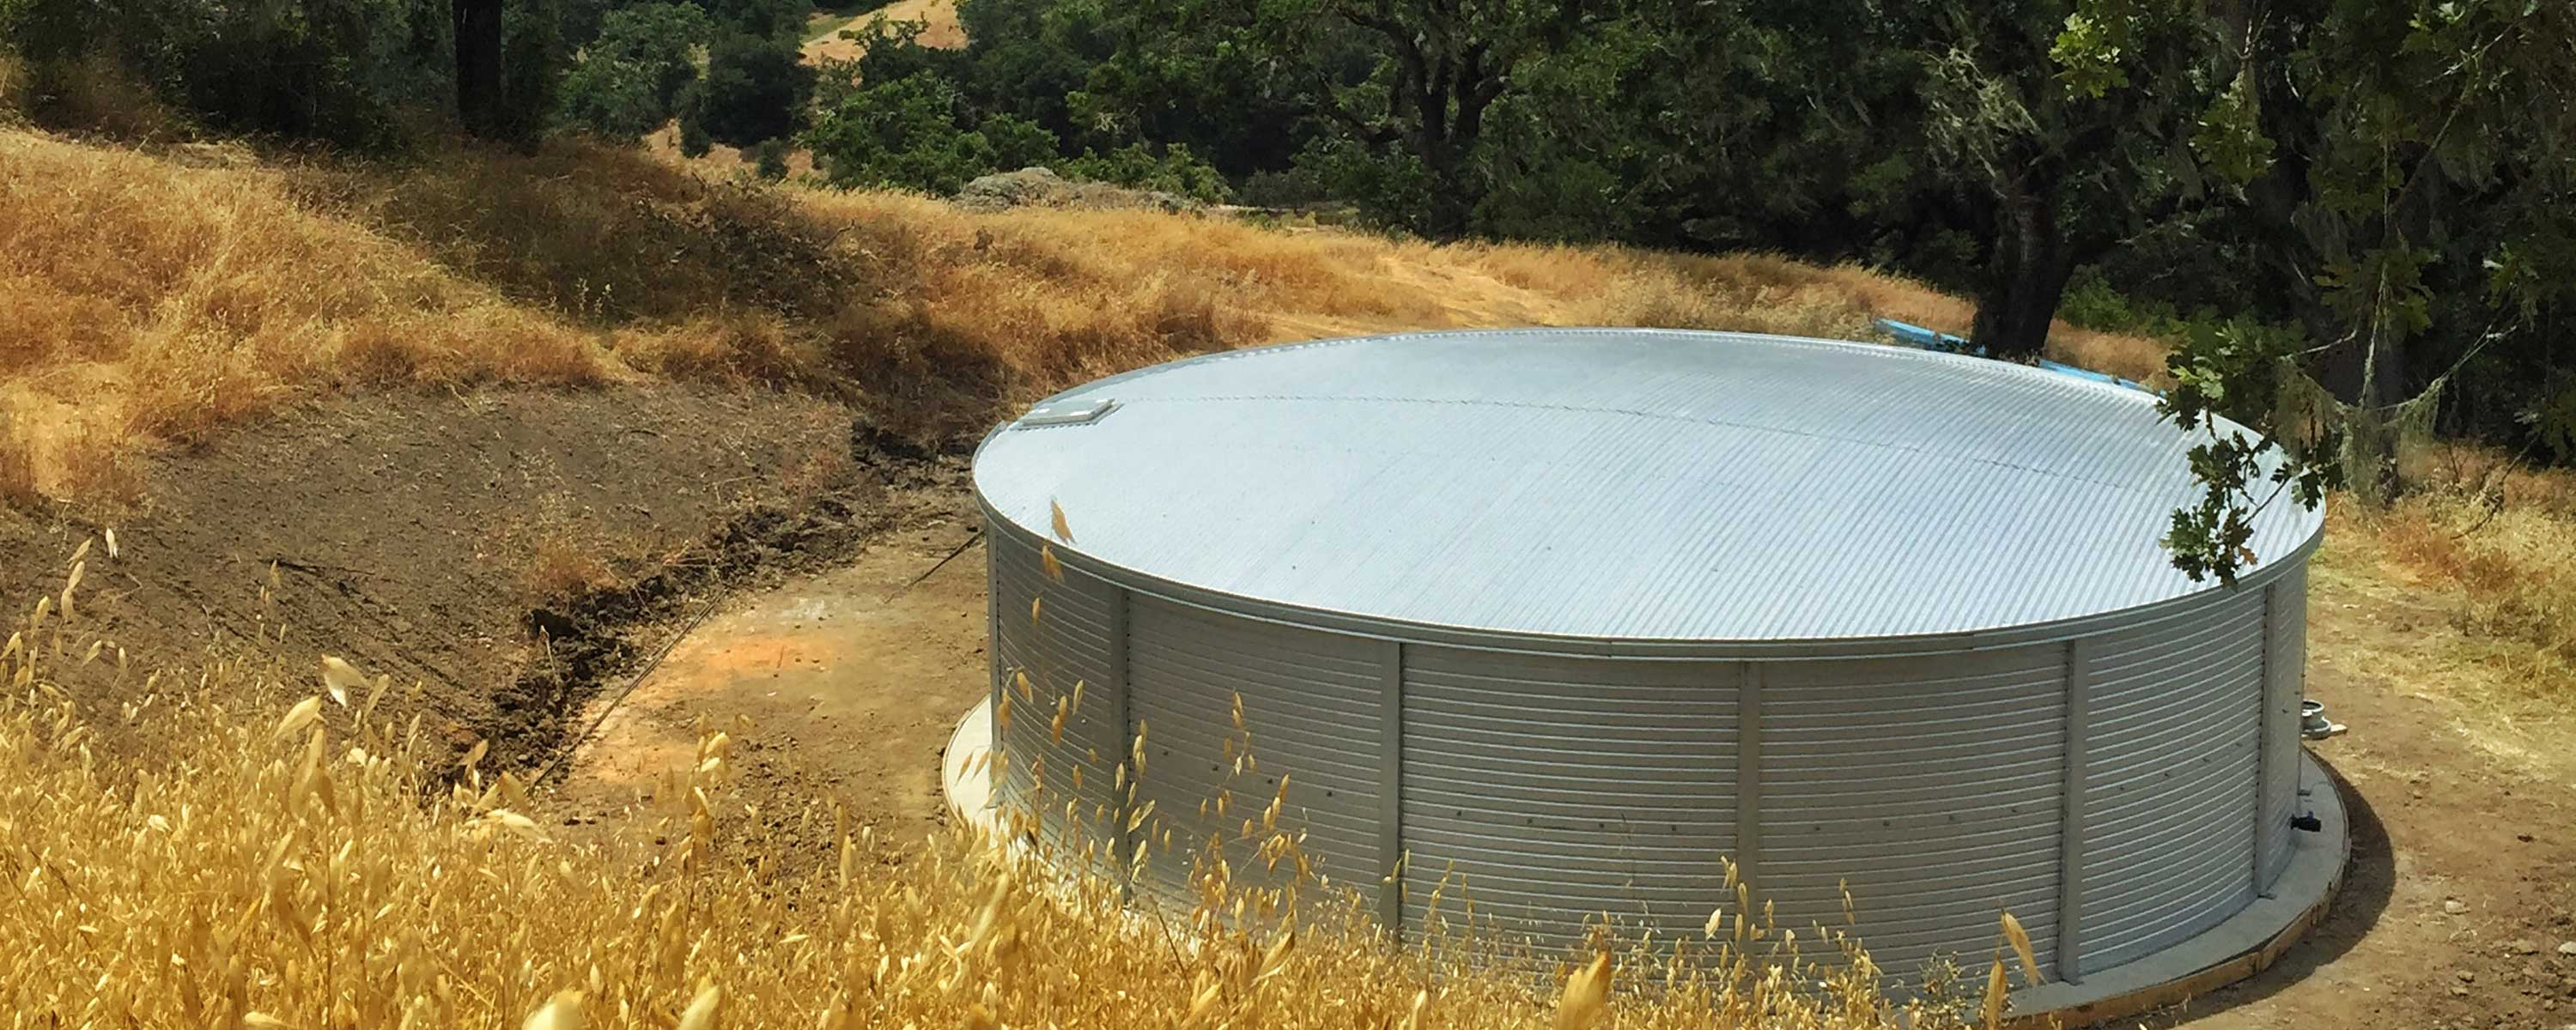 Winery water systems Winery tanks BPA free